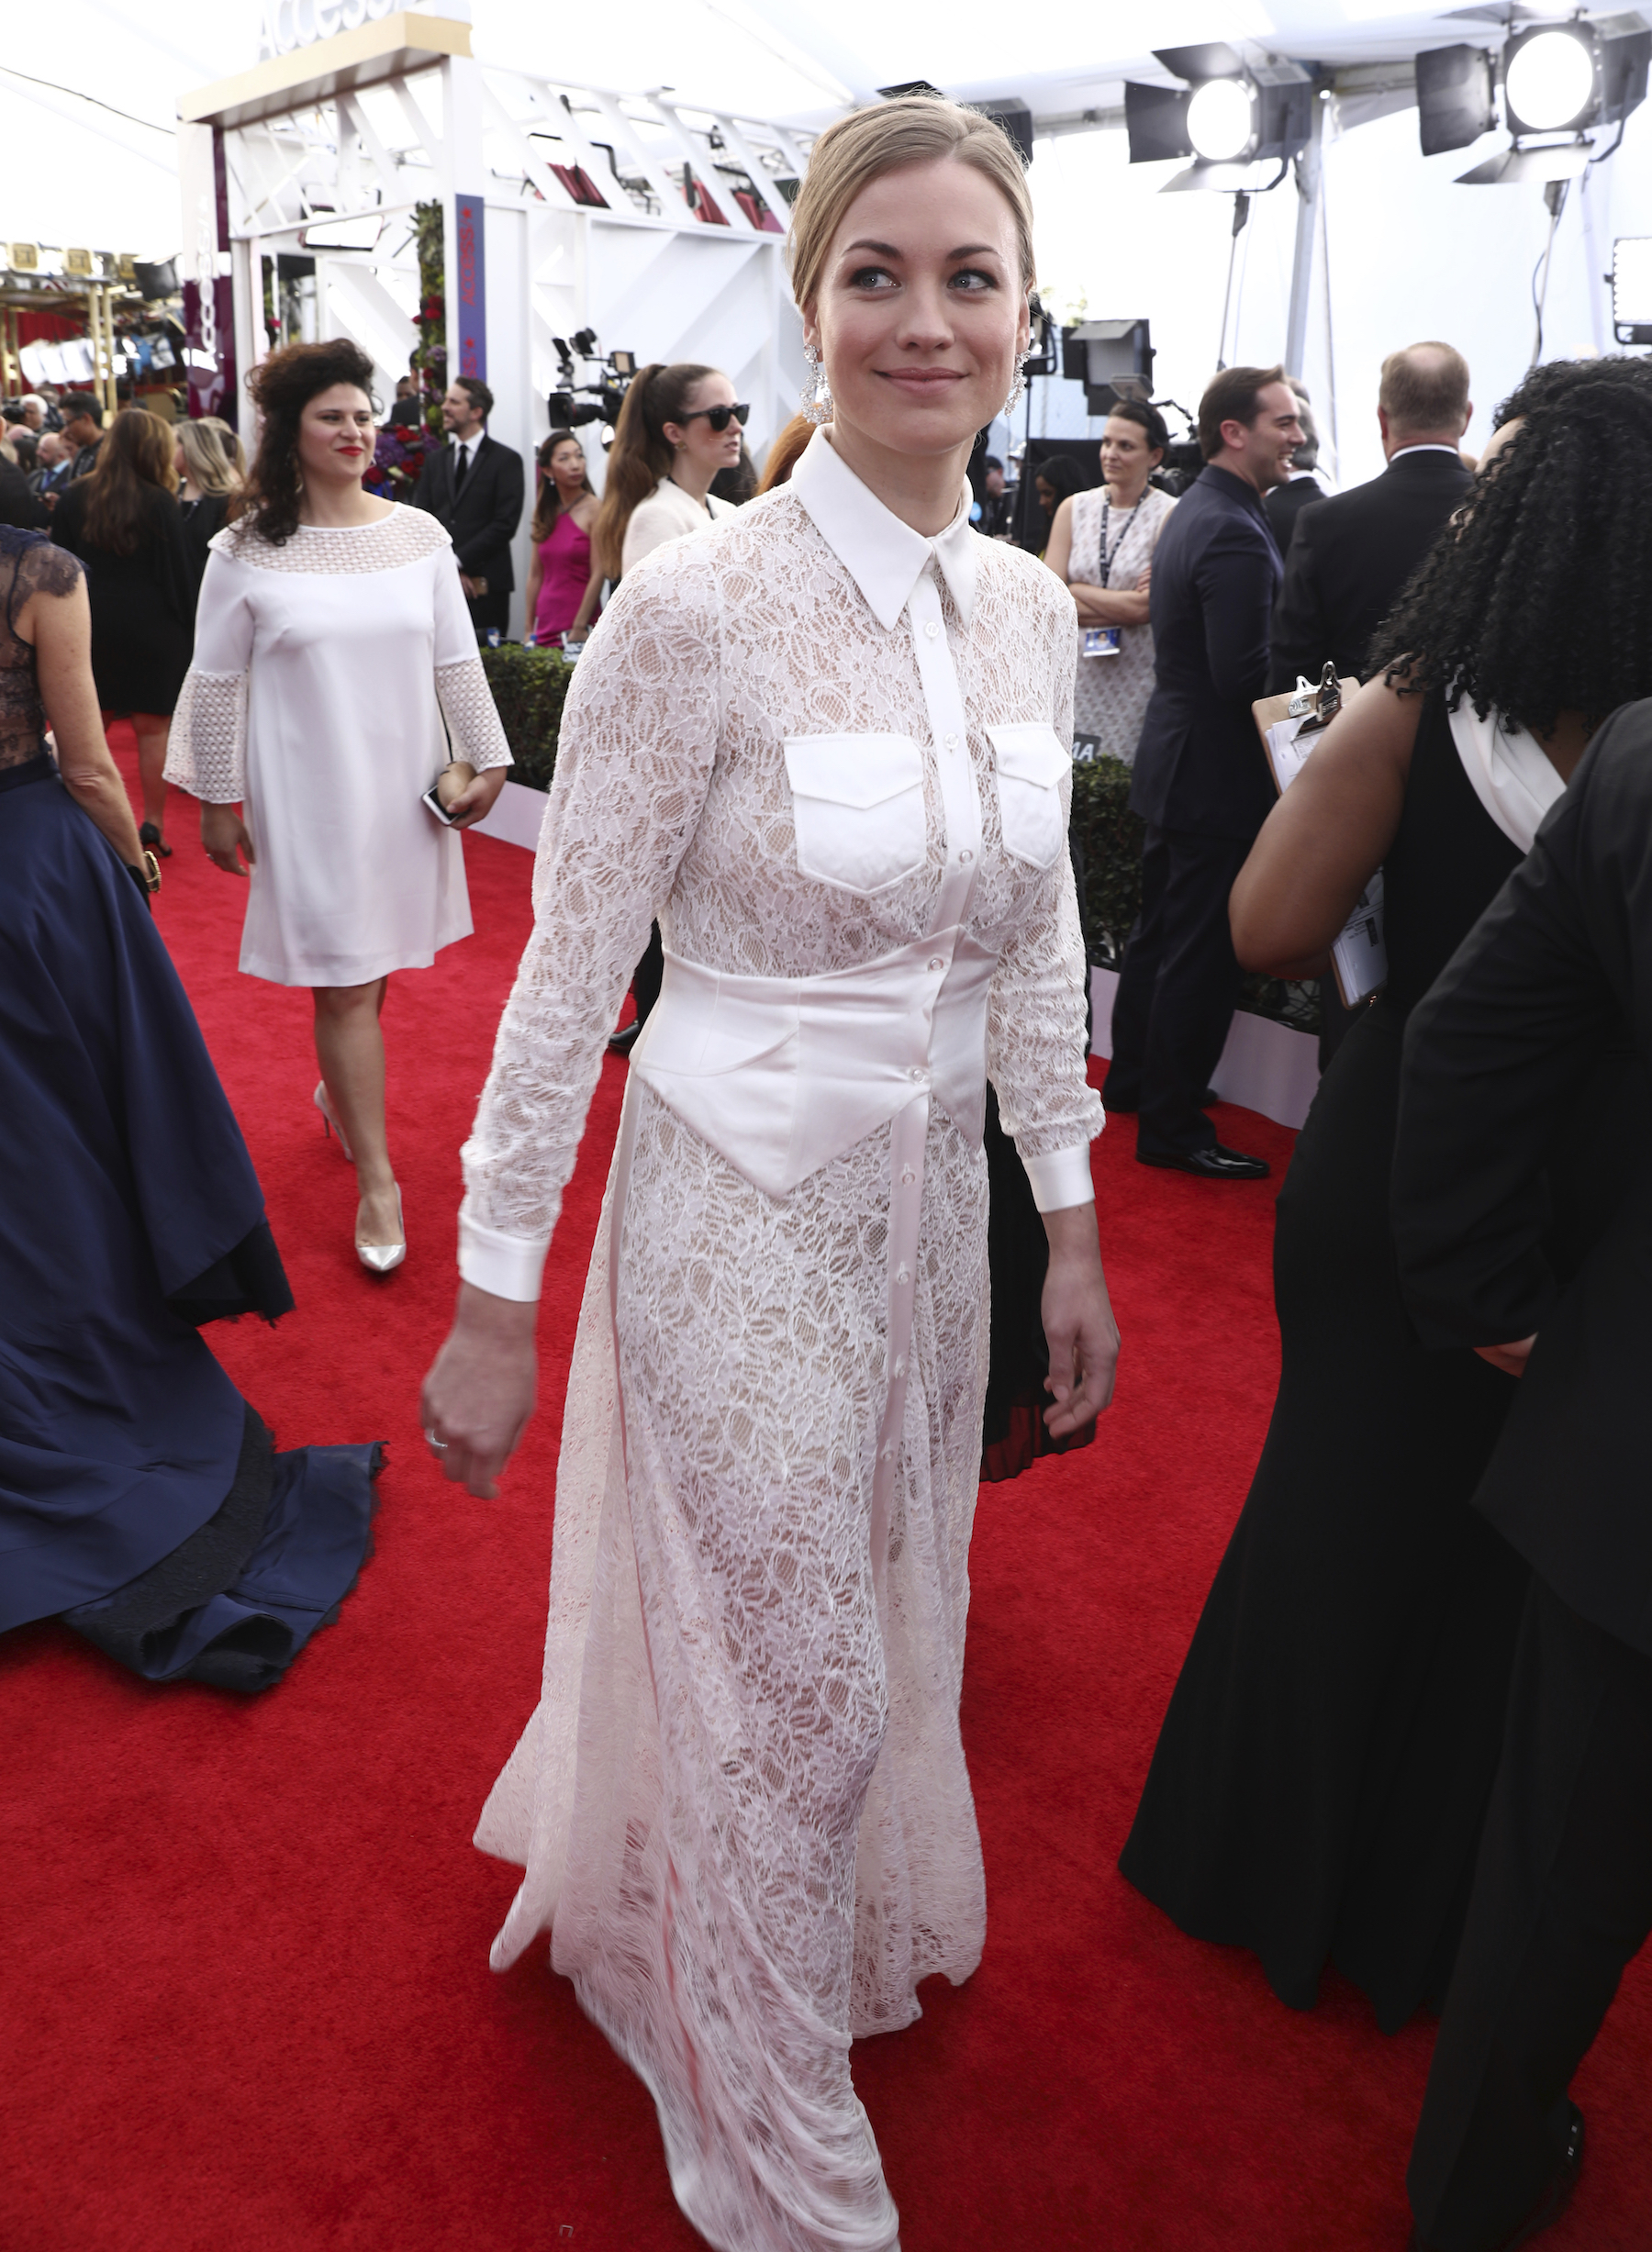 <div class='meta'><div class='origin-logo' data-origin='AP'></div><span class='caption-text' data-credit='Matt Sayles/Invision/AP'>Yvonne Strahovski arrives at the 24th annual Screen Actors Guild Awards at the Shrine Auditorium & Expo Hall on Sunday, Jan. 21, 2018, in Los Angeles.</span></div>